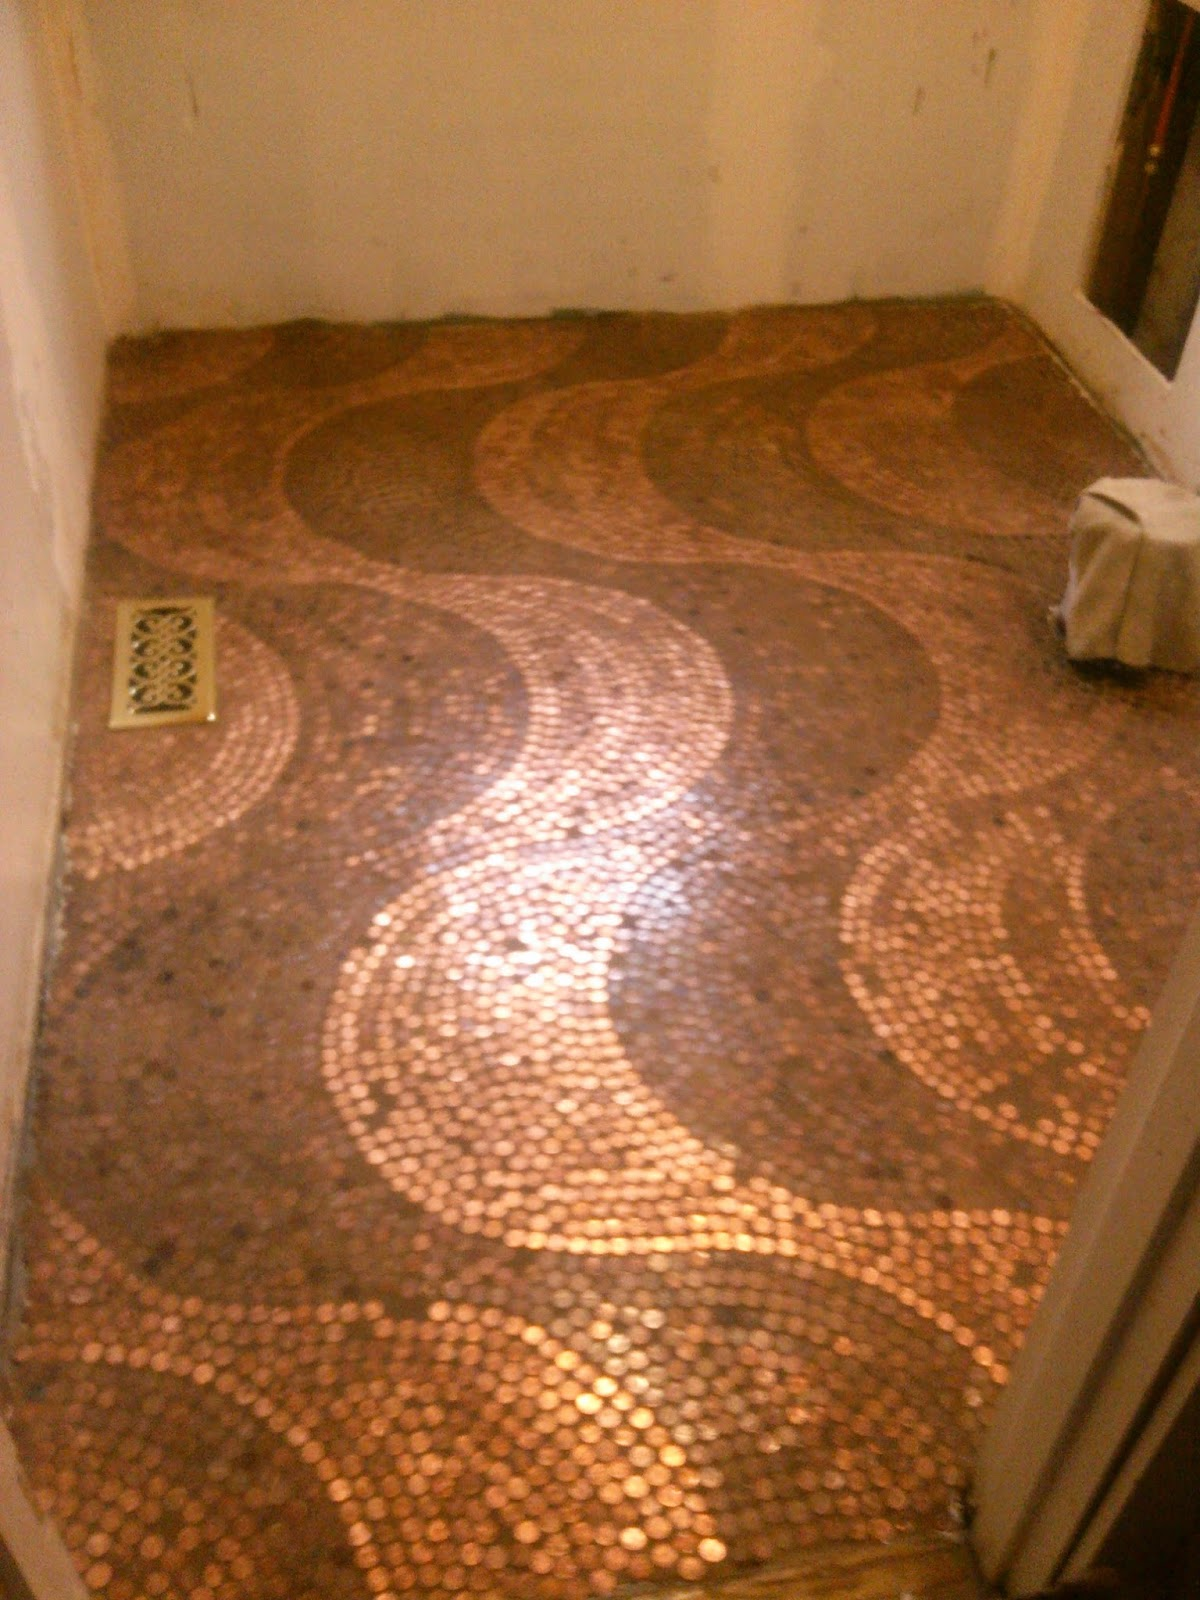 Our Irish Manor: Our Penny Floor